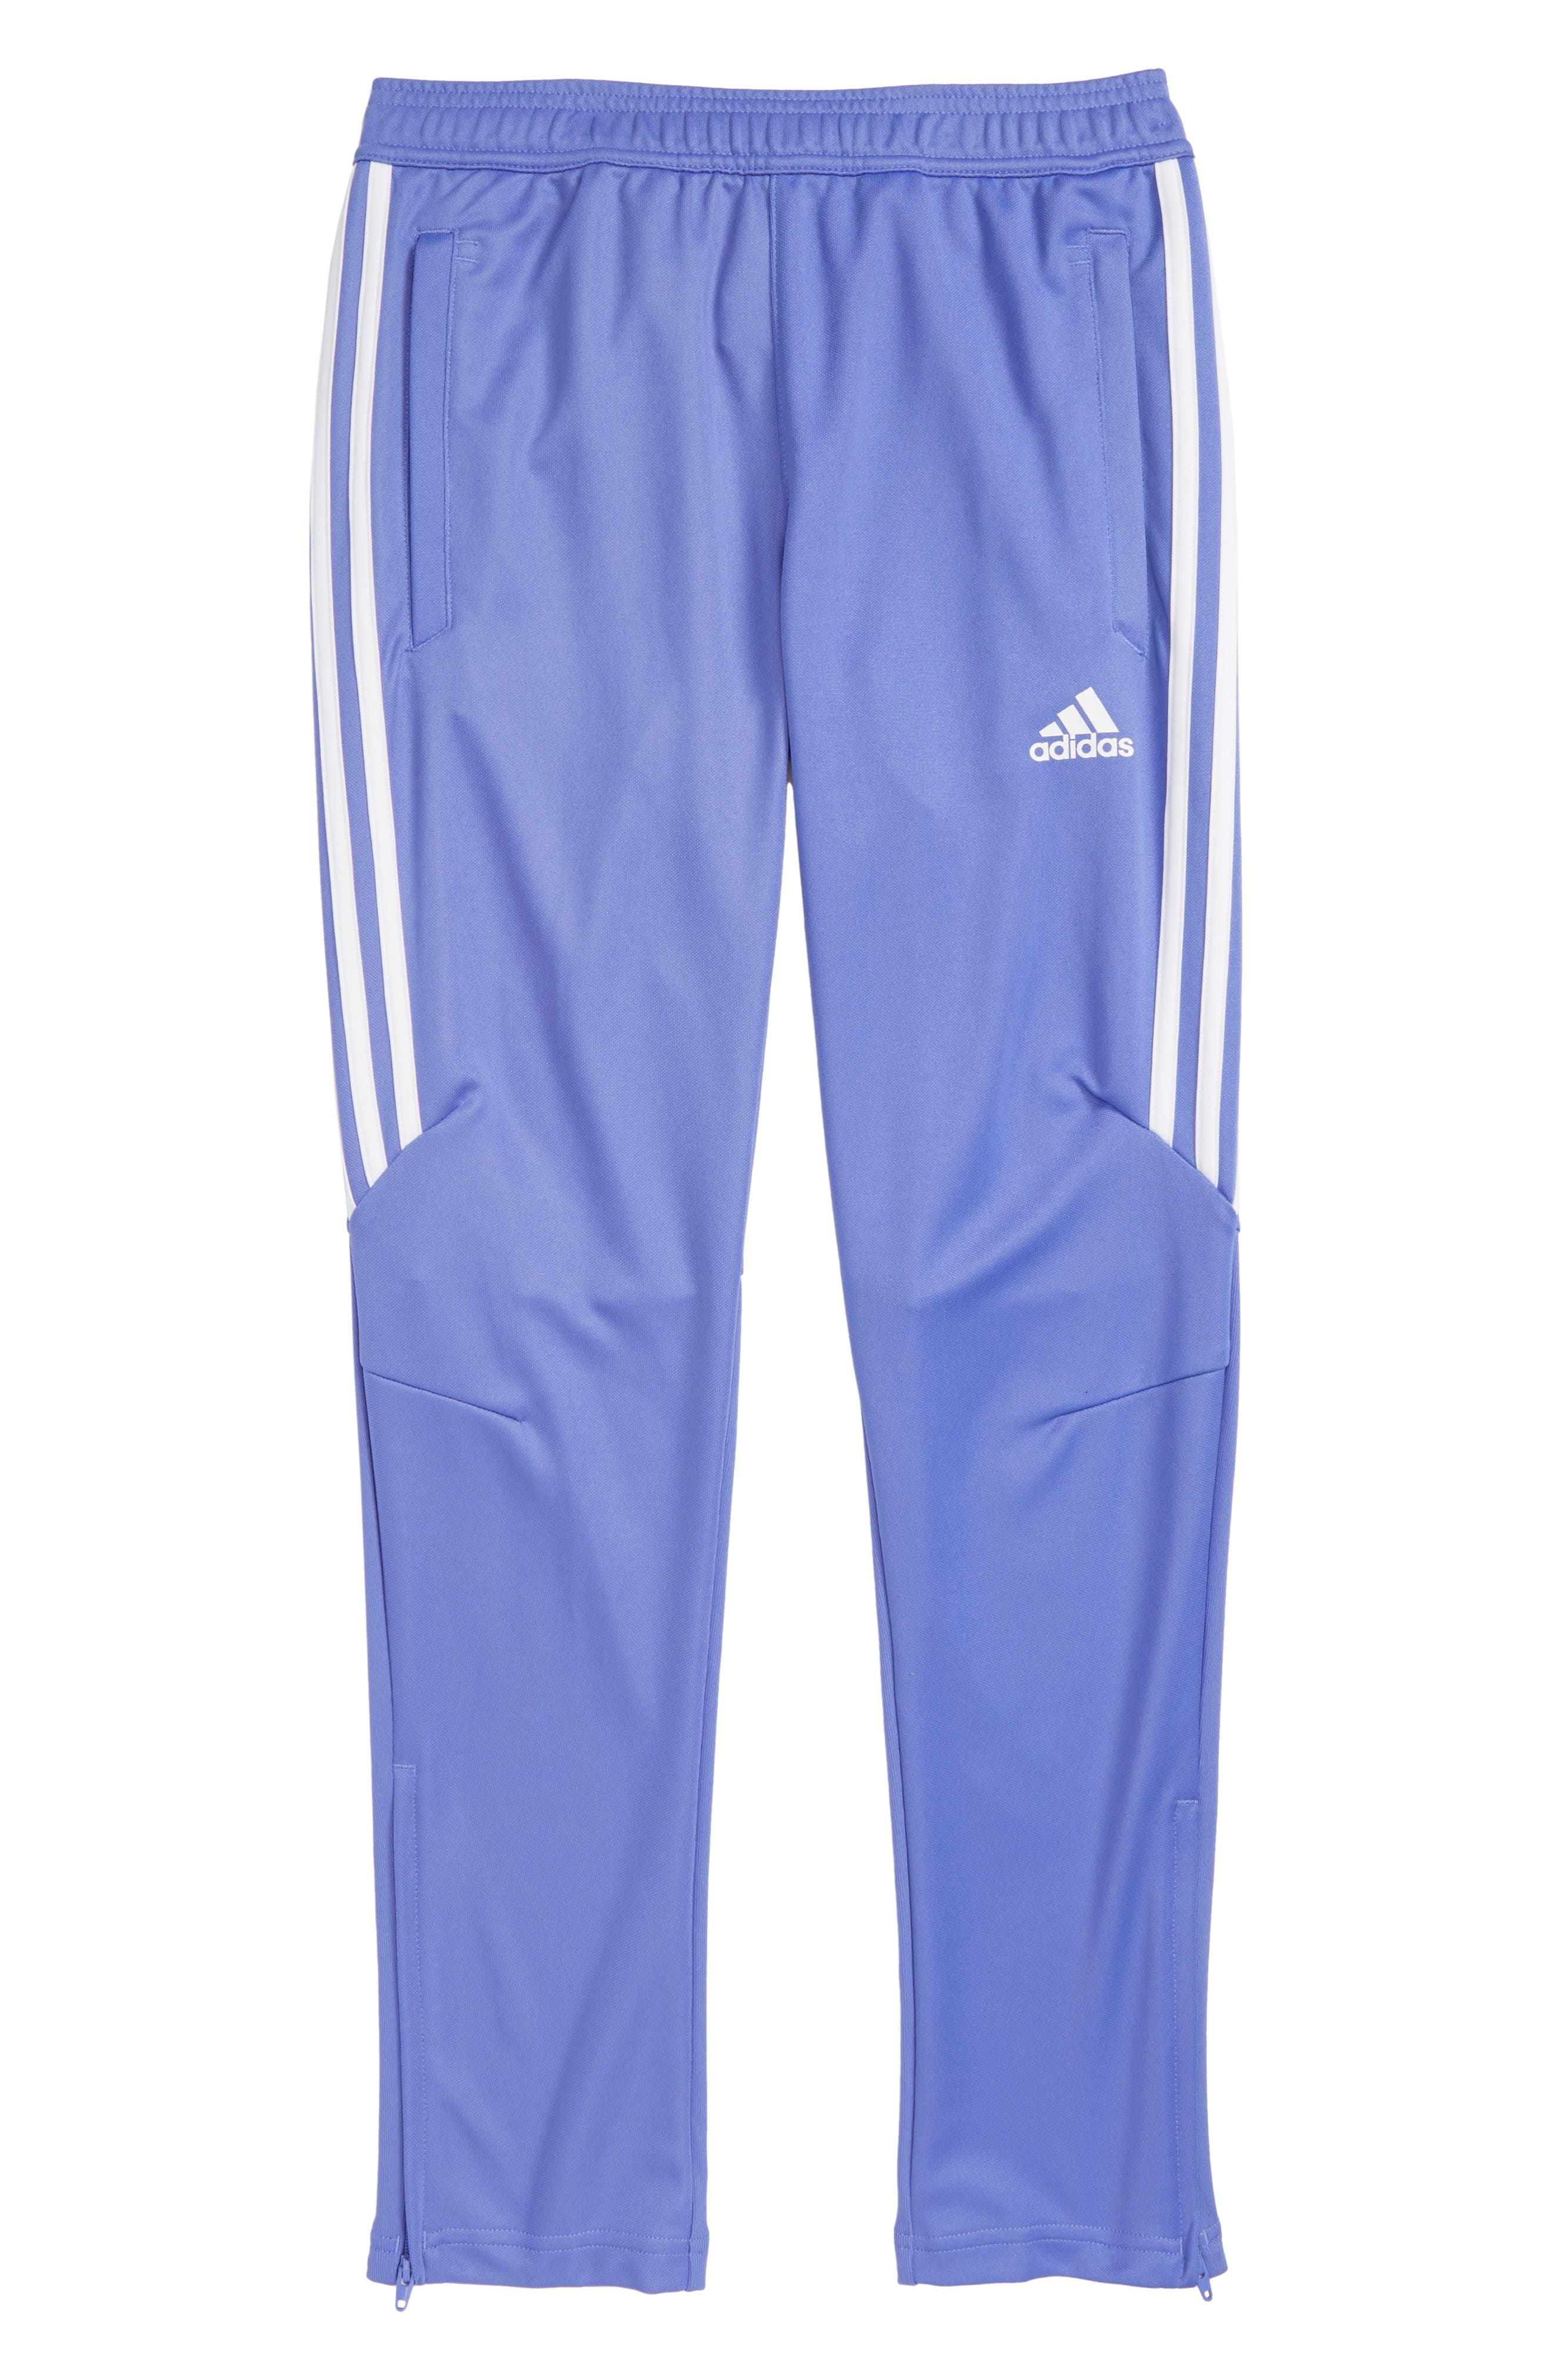 adidas Tiro Climacool<sup>®</sup> Pants,                             Main thumbnail 1, color,                             REAL LILAC / WHITE